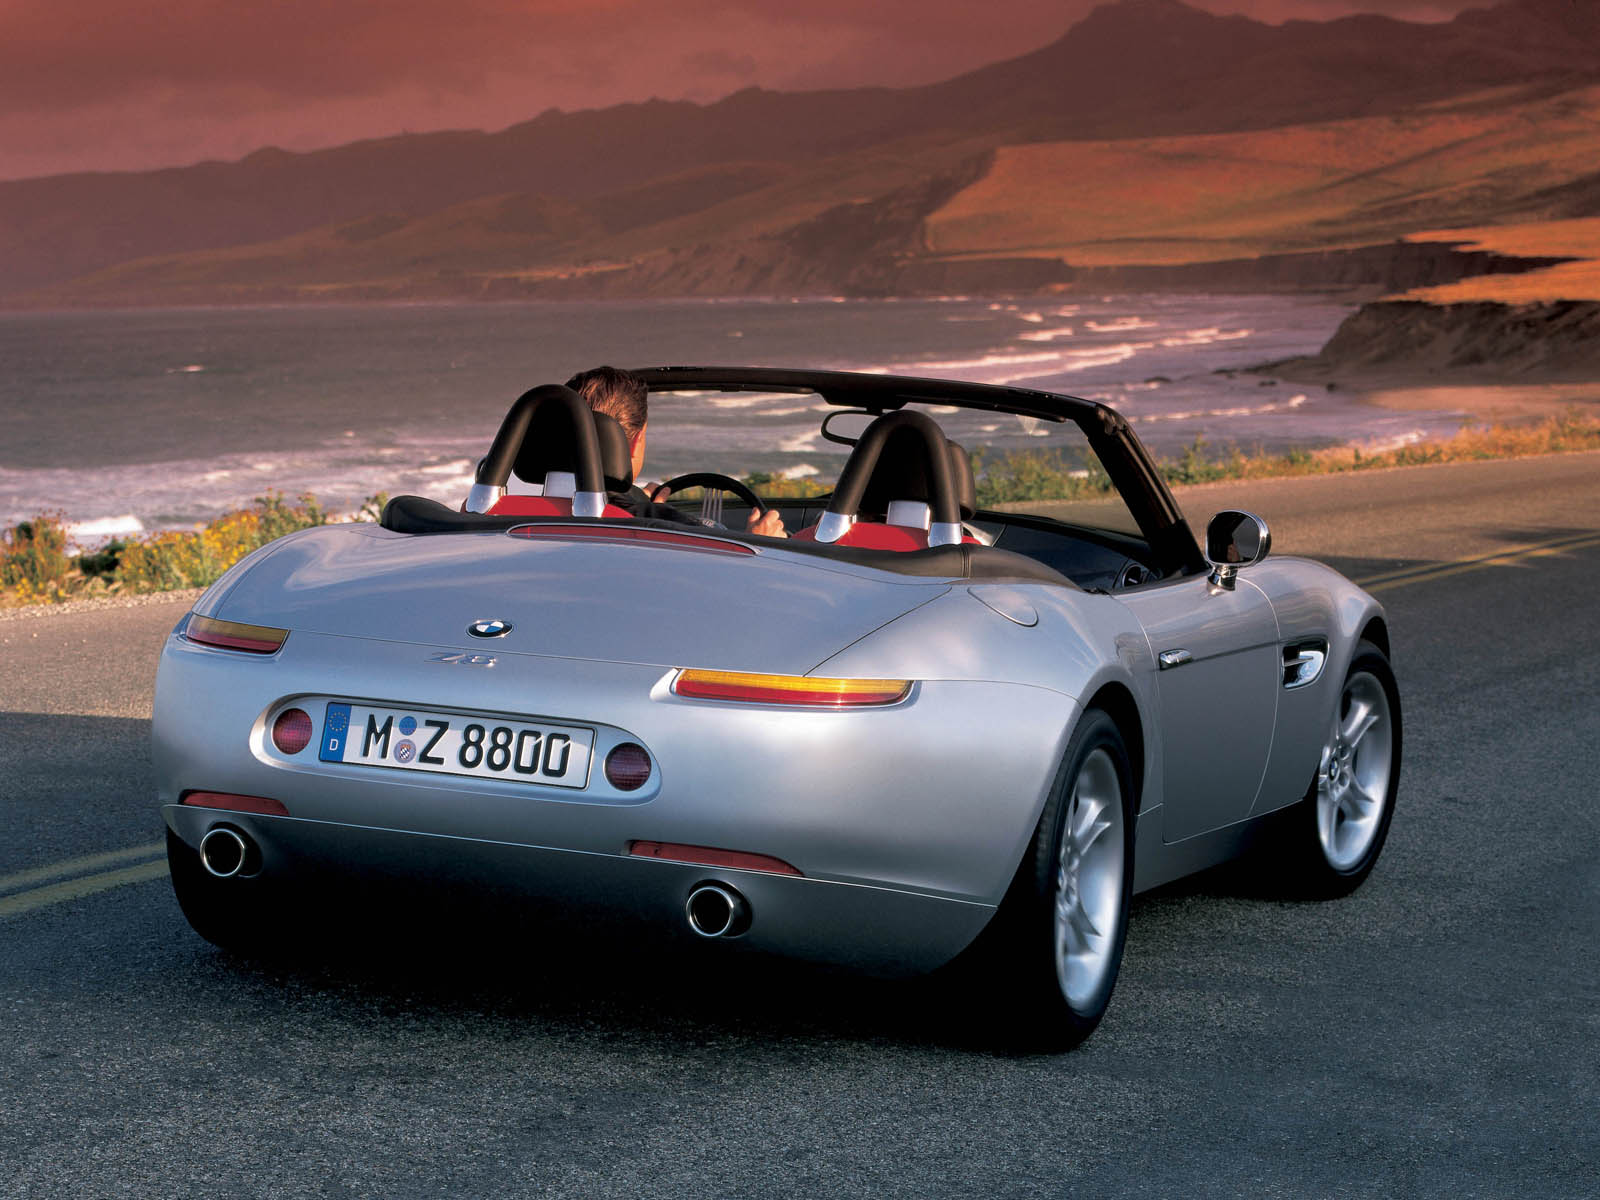 bmw z8 photos photogallery with 38 pics. Black Bedroom Furniture Sets. Home Design Ideas